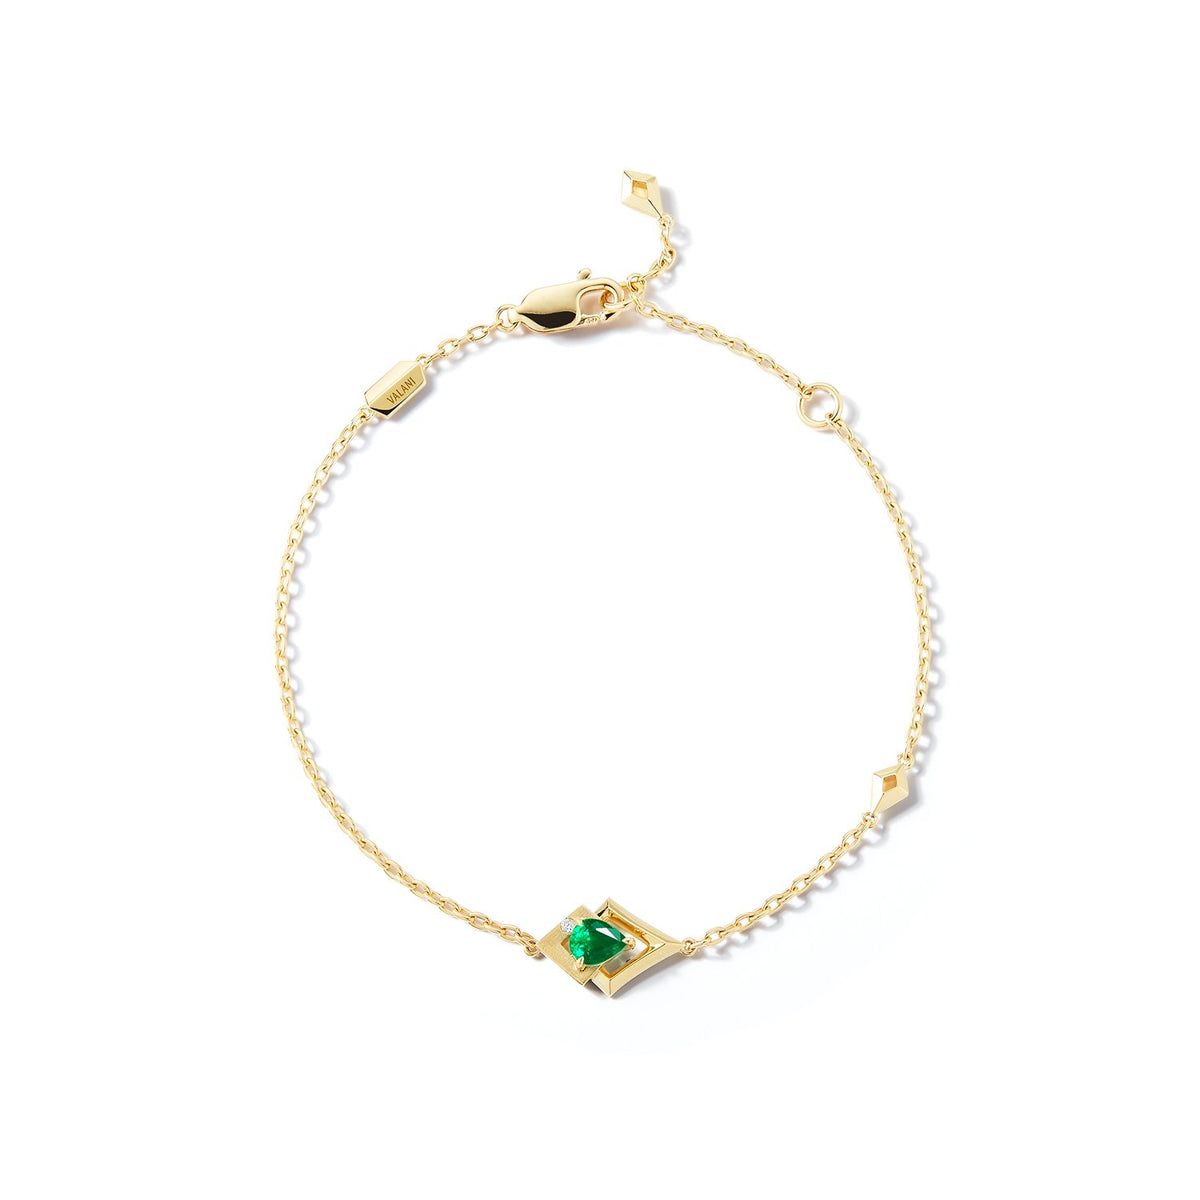 Valani 18K Yellow Gold Arris Emerald Bracelet